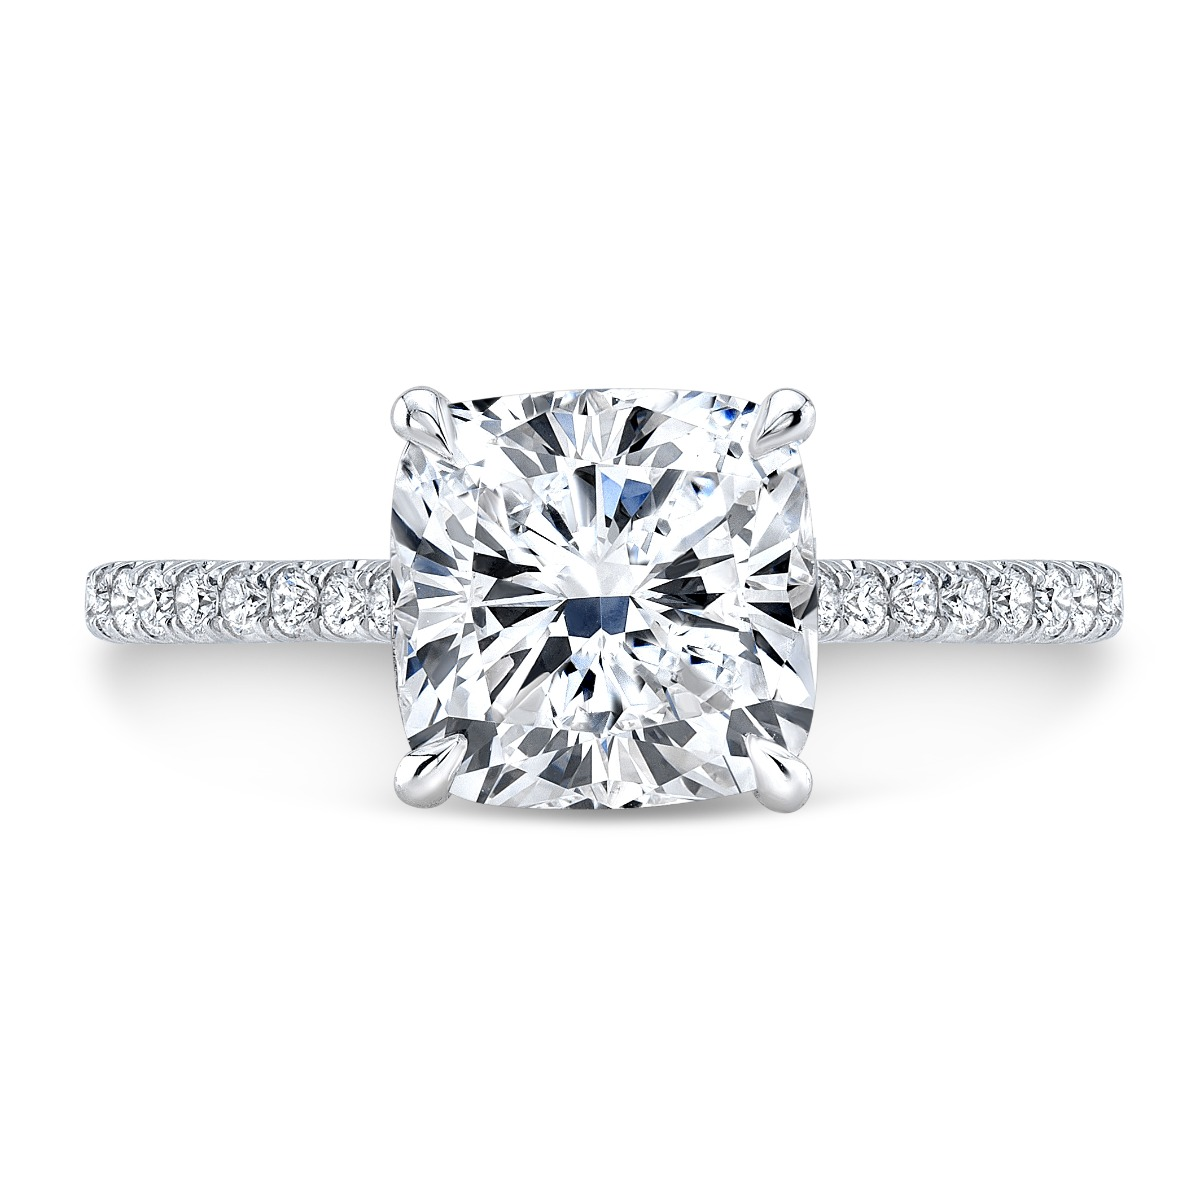 Classic Cushion Cut Diamond Engagement Ring in White Gold